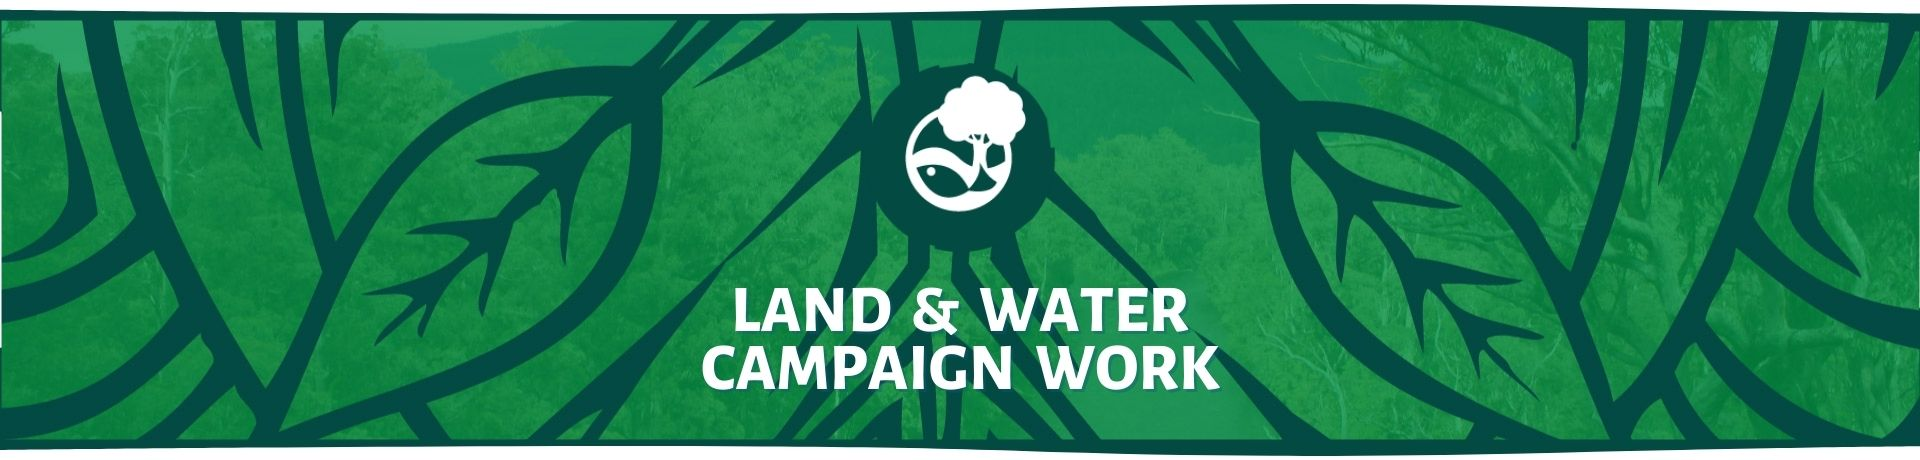 Land & Water Campaign Work